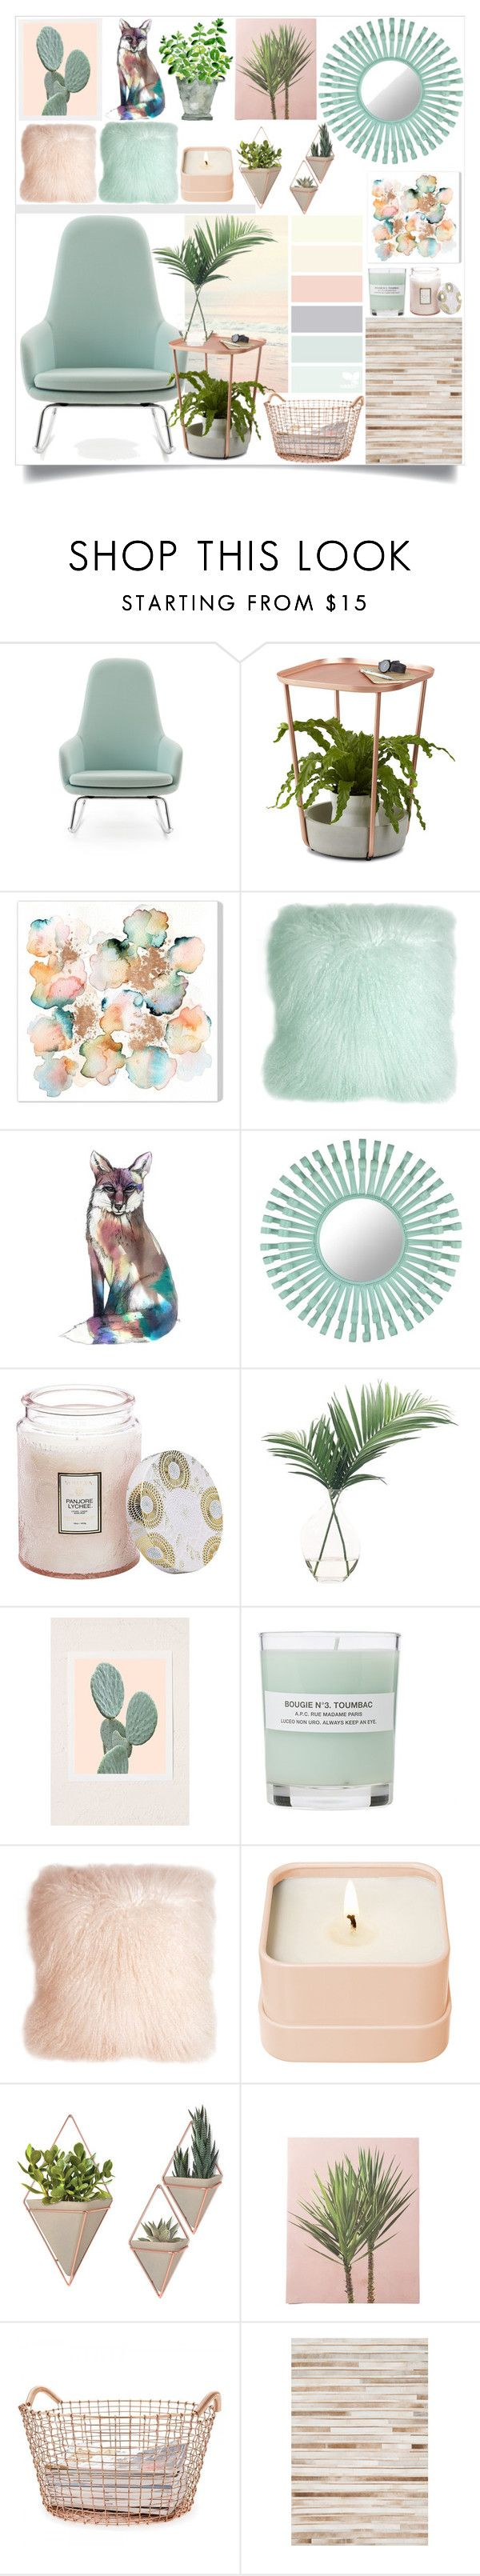 """Peach Beach"" by atarituesday on Polyvore featuring interior, interiors, interior design, home, home decor, interior decorating, Normann Copenhagen, Umbra, Pillow Decor and Florence Broadhurst"